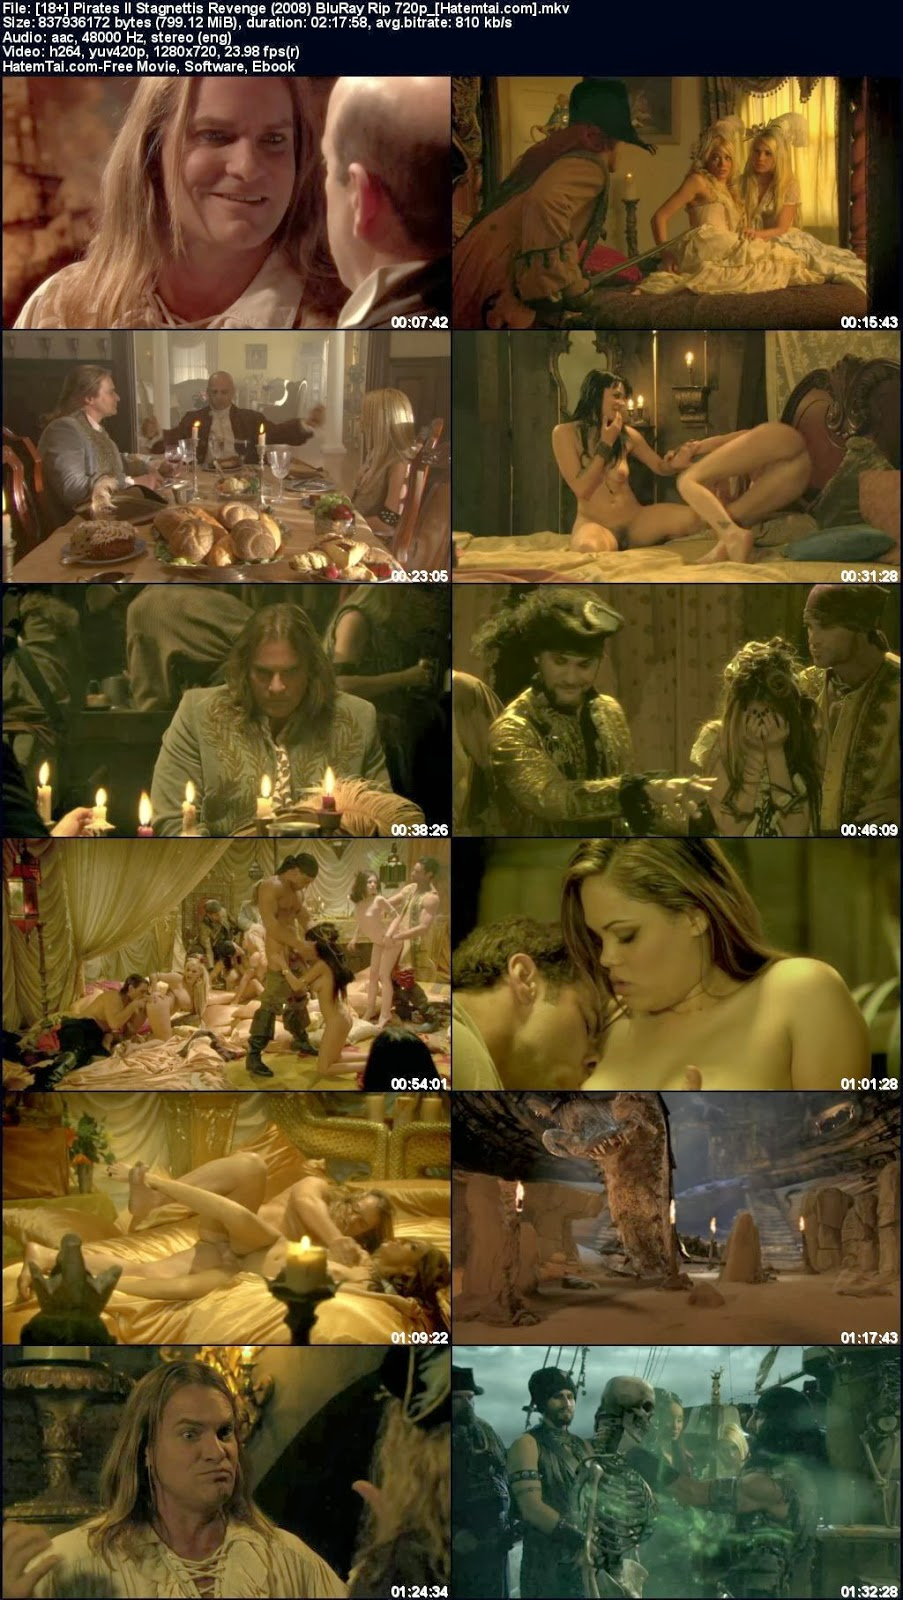 Pirates 3 porn movie 3gp sex tube